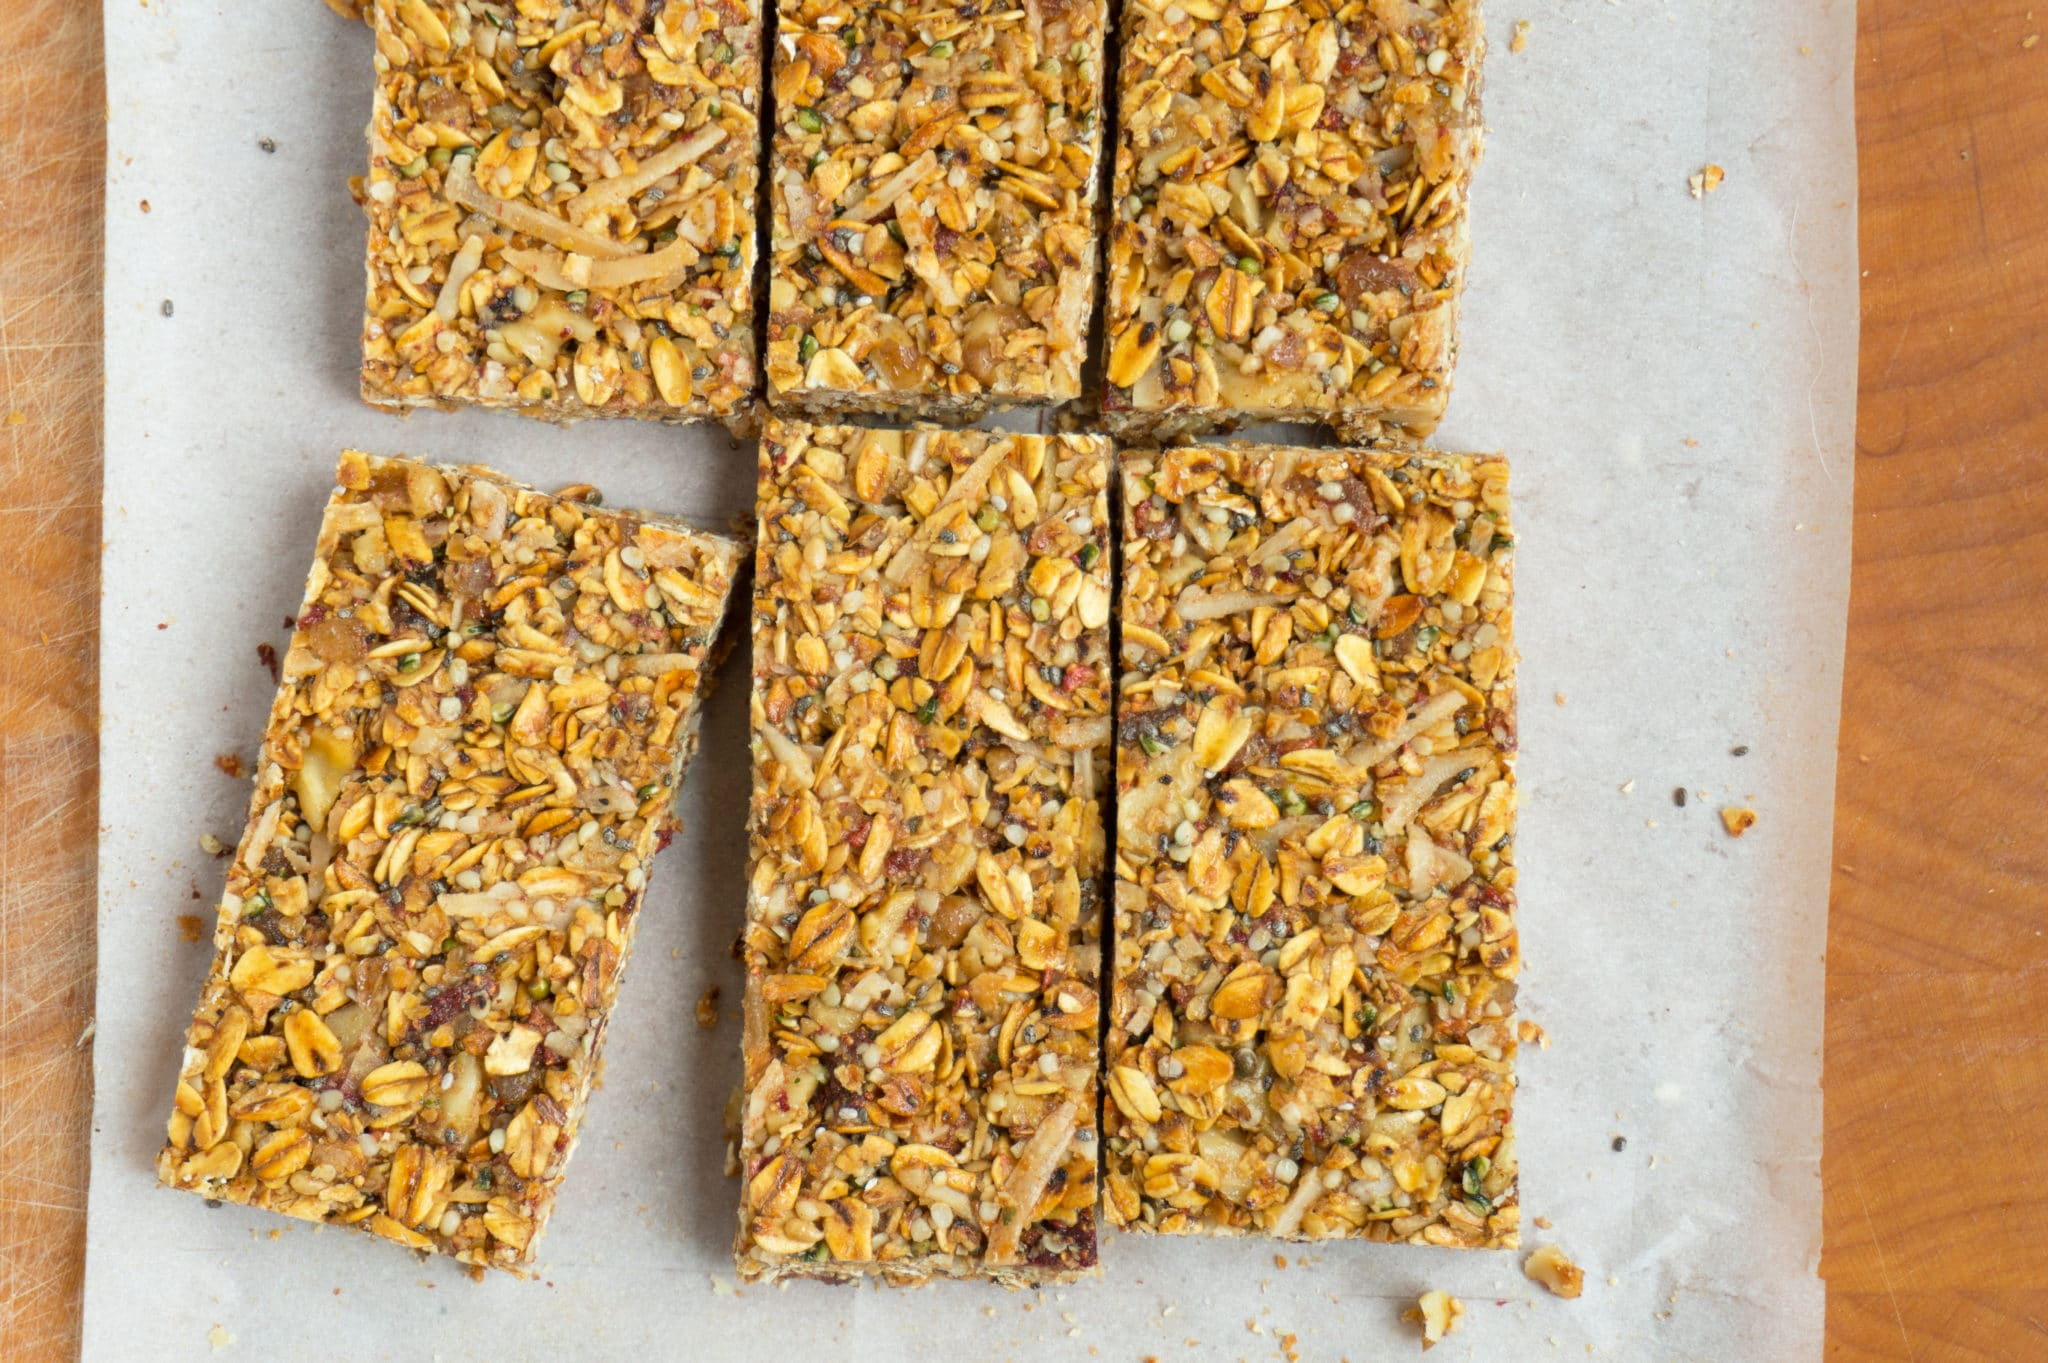 Strawberry-Ginger Granola Bars cut into rectangles